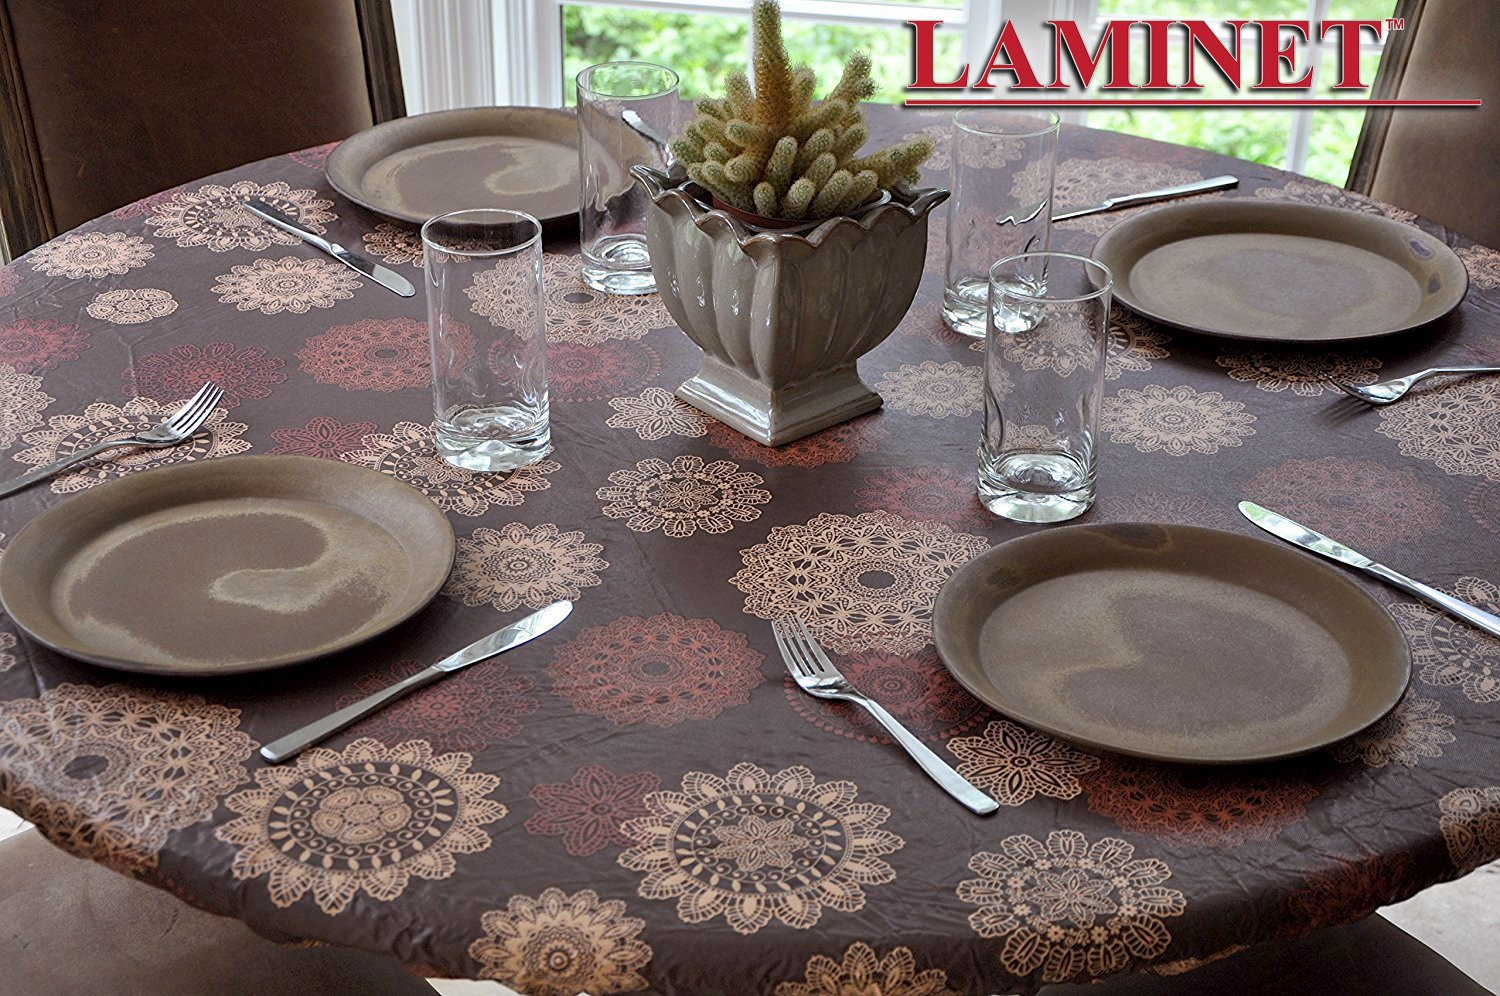 LAMINET Medallion Elastic Table Top Cover - Large Round - Fits Up To 45''-56'' Diameter